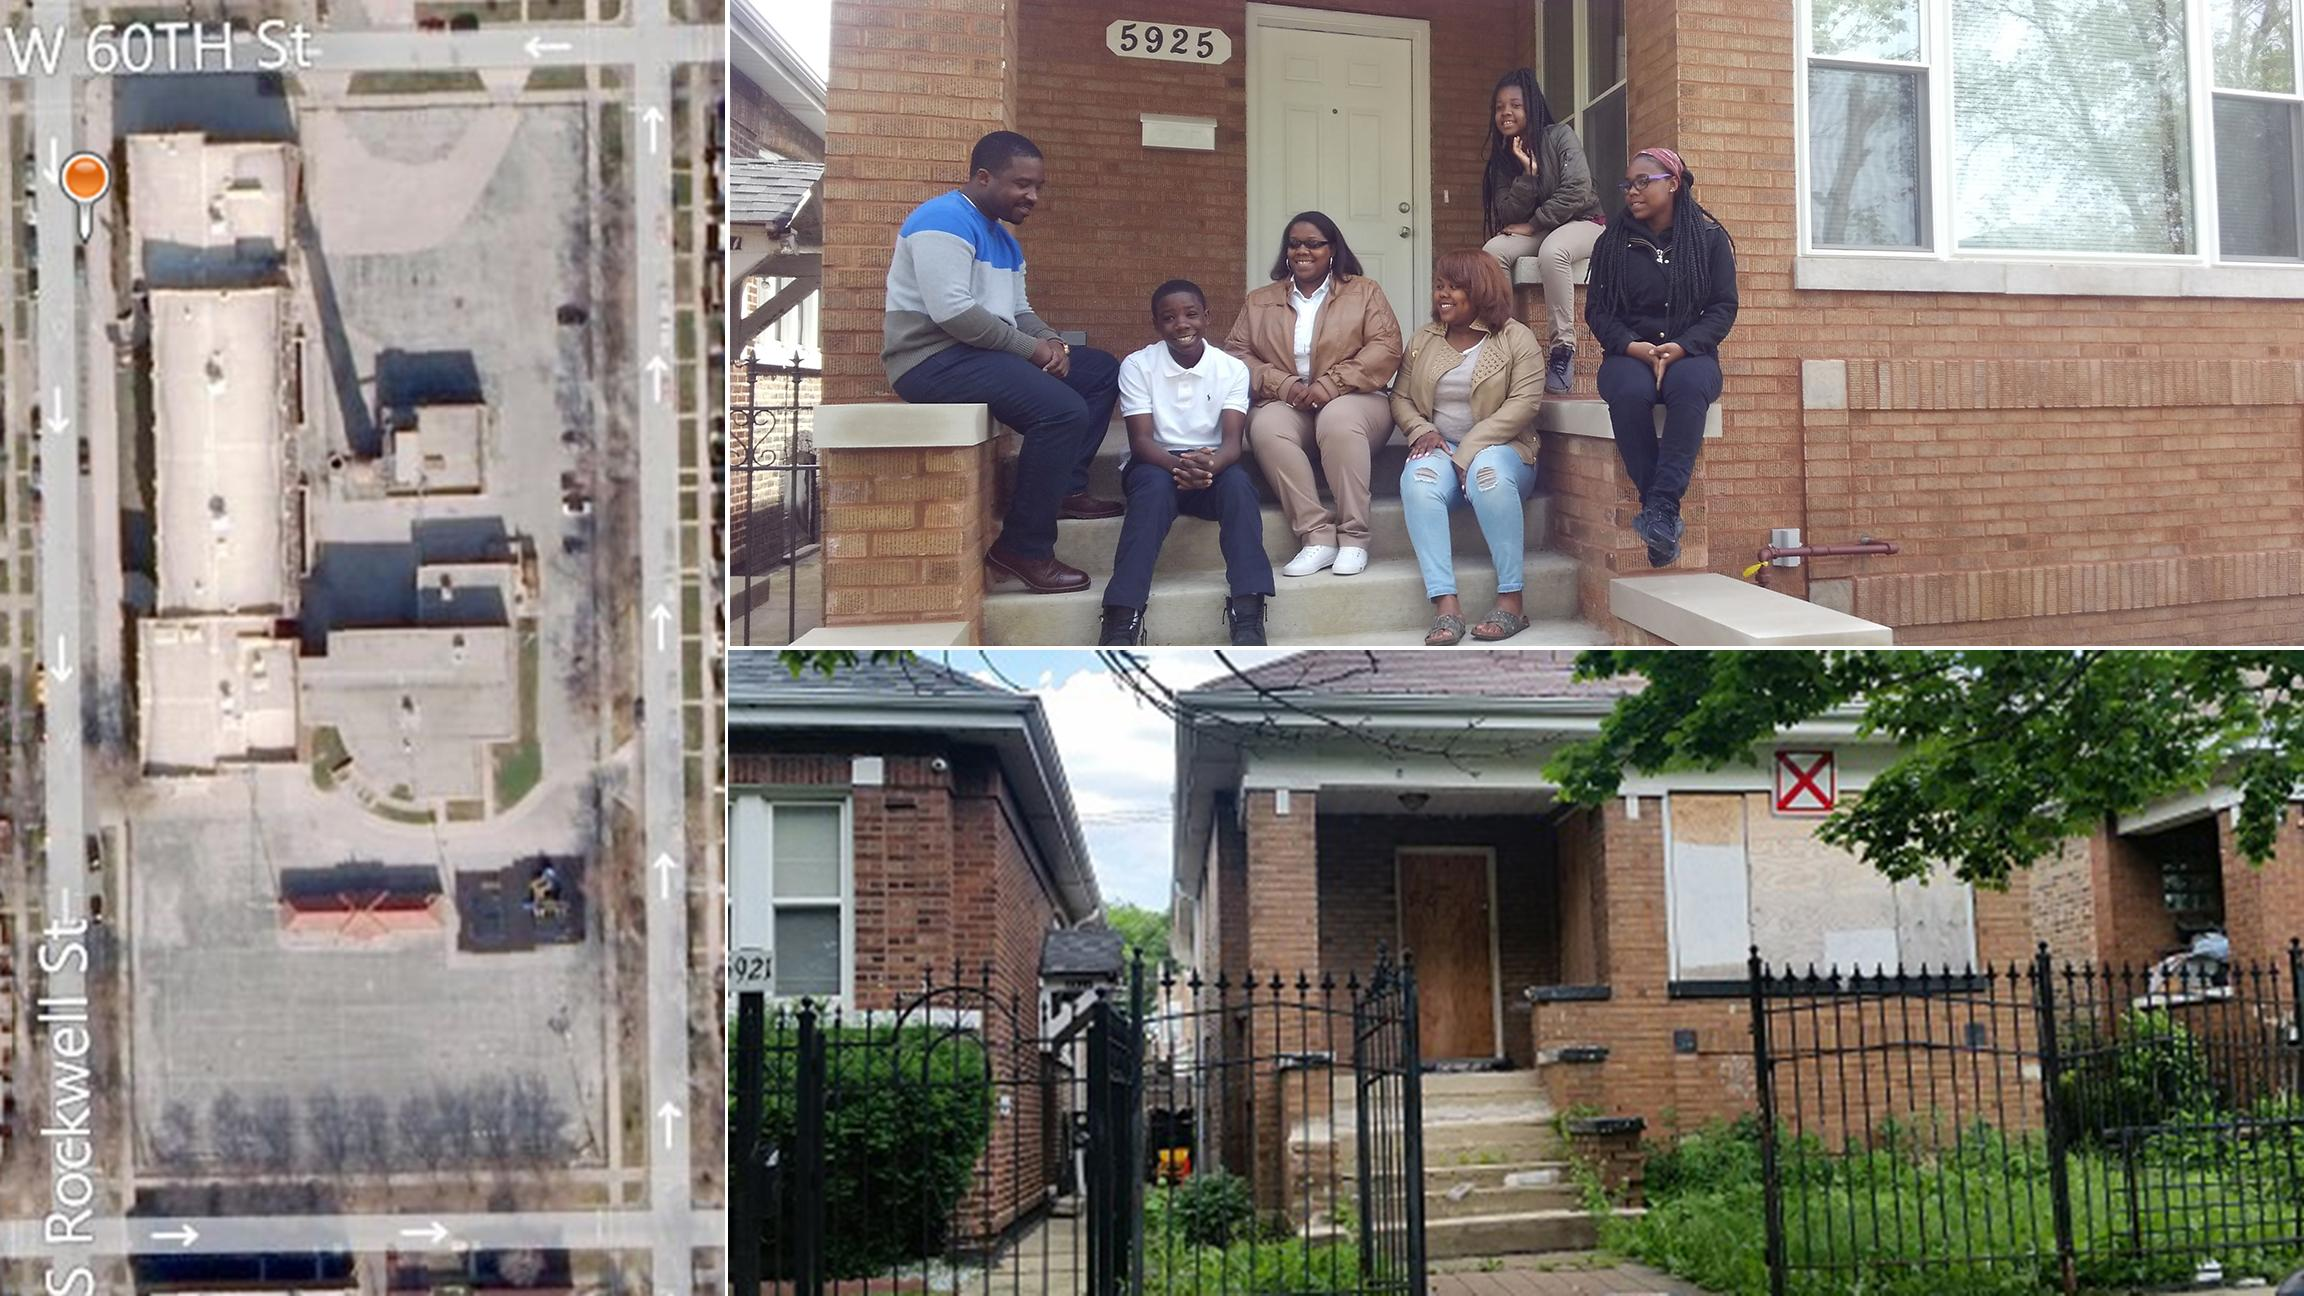 Community Initiative to 'Reclaim Southwest Chicago' Expands